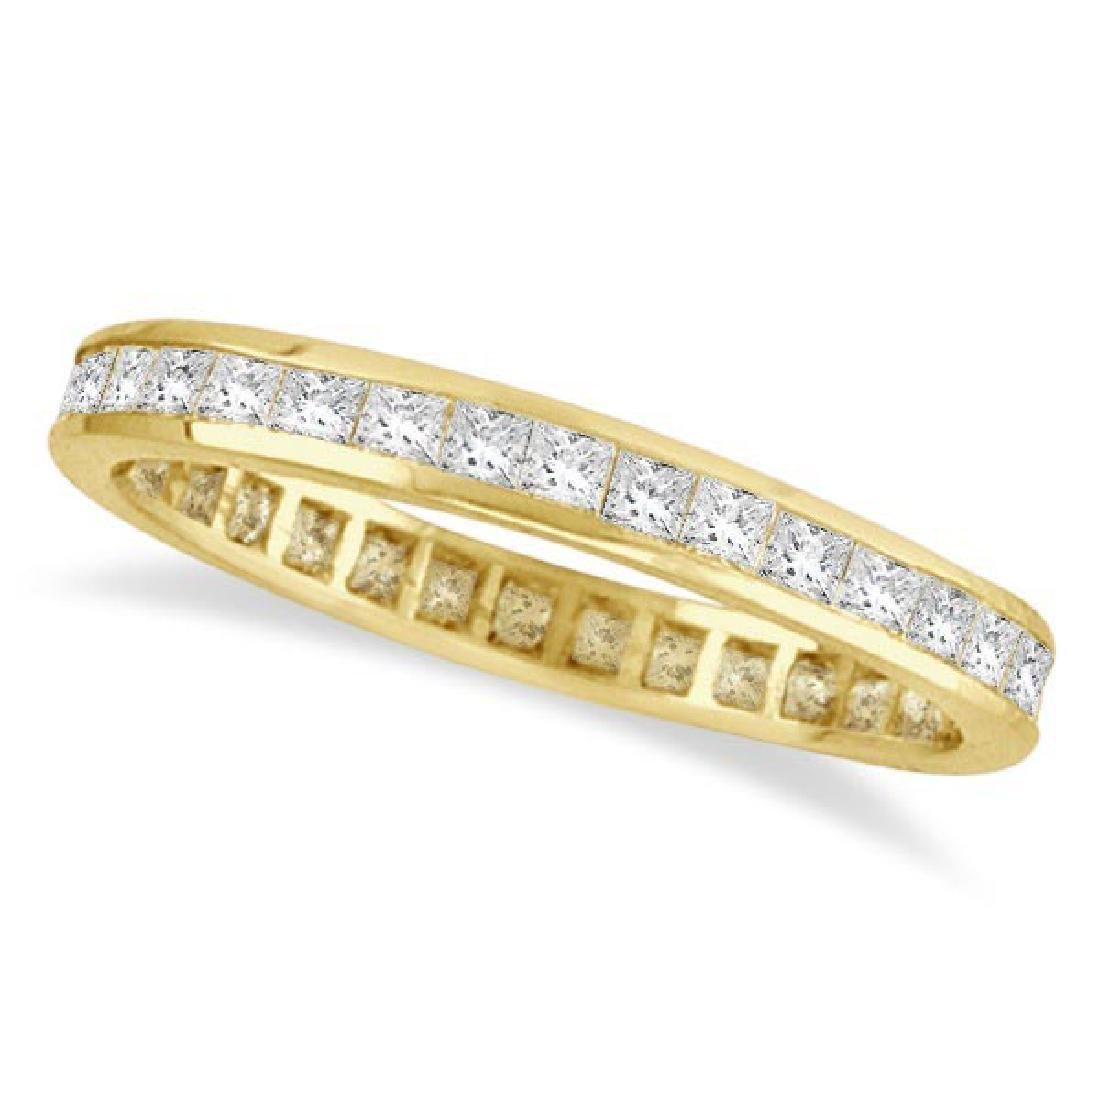 Princess-Cut Diamond Eternity Ring Band 14k Yellow Gold